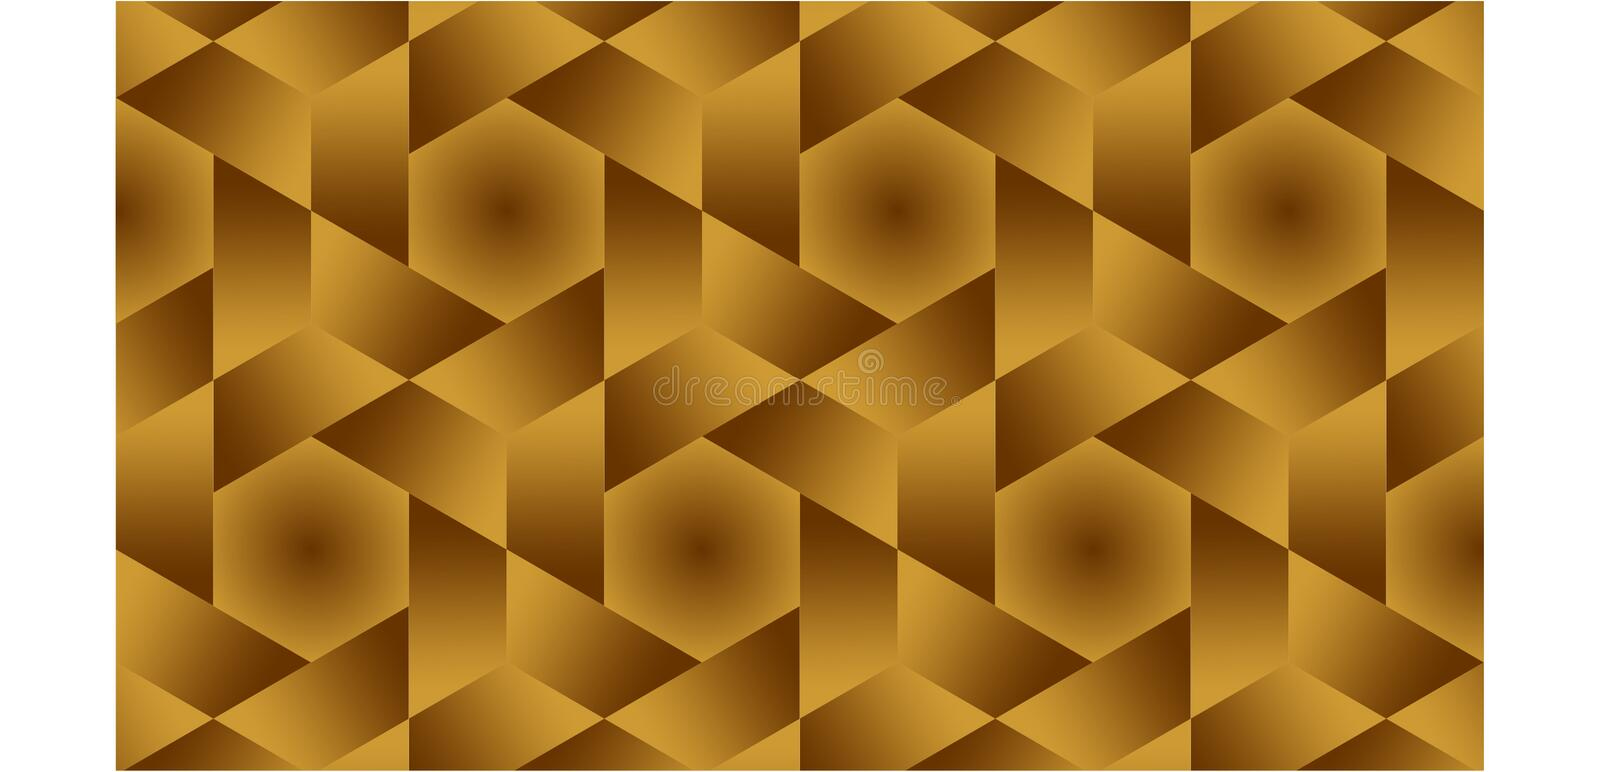 Background for half hexagonal,hexagonal and triangles are golden shaped group consisting of gold and brown, abstract geometric pat royalty free stock photography